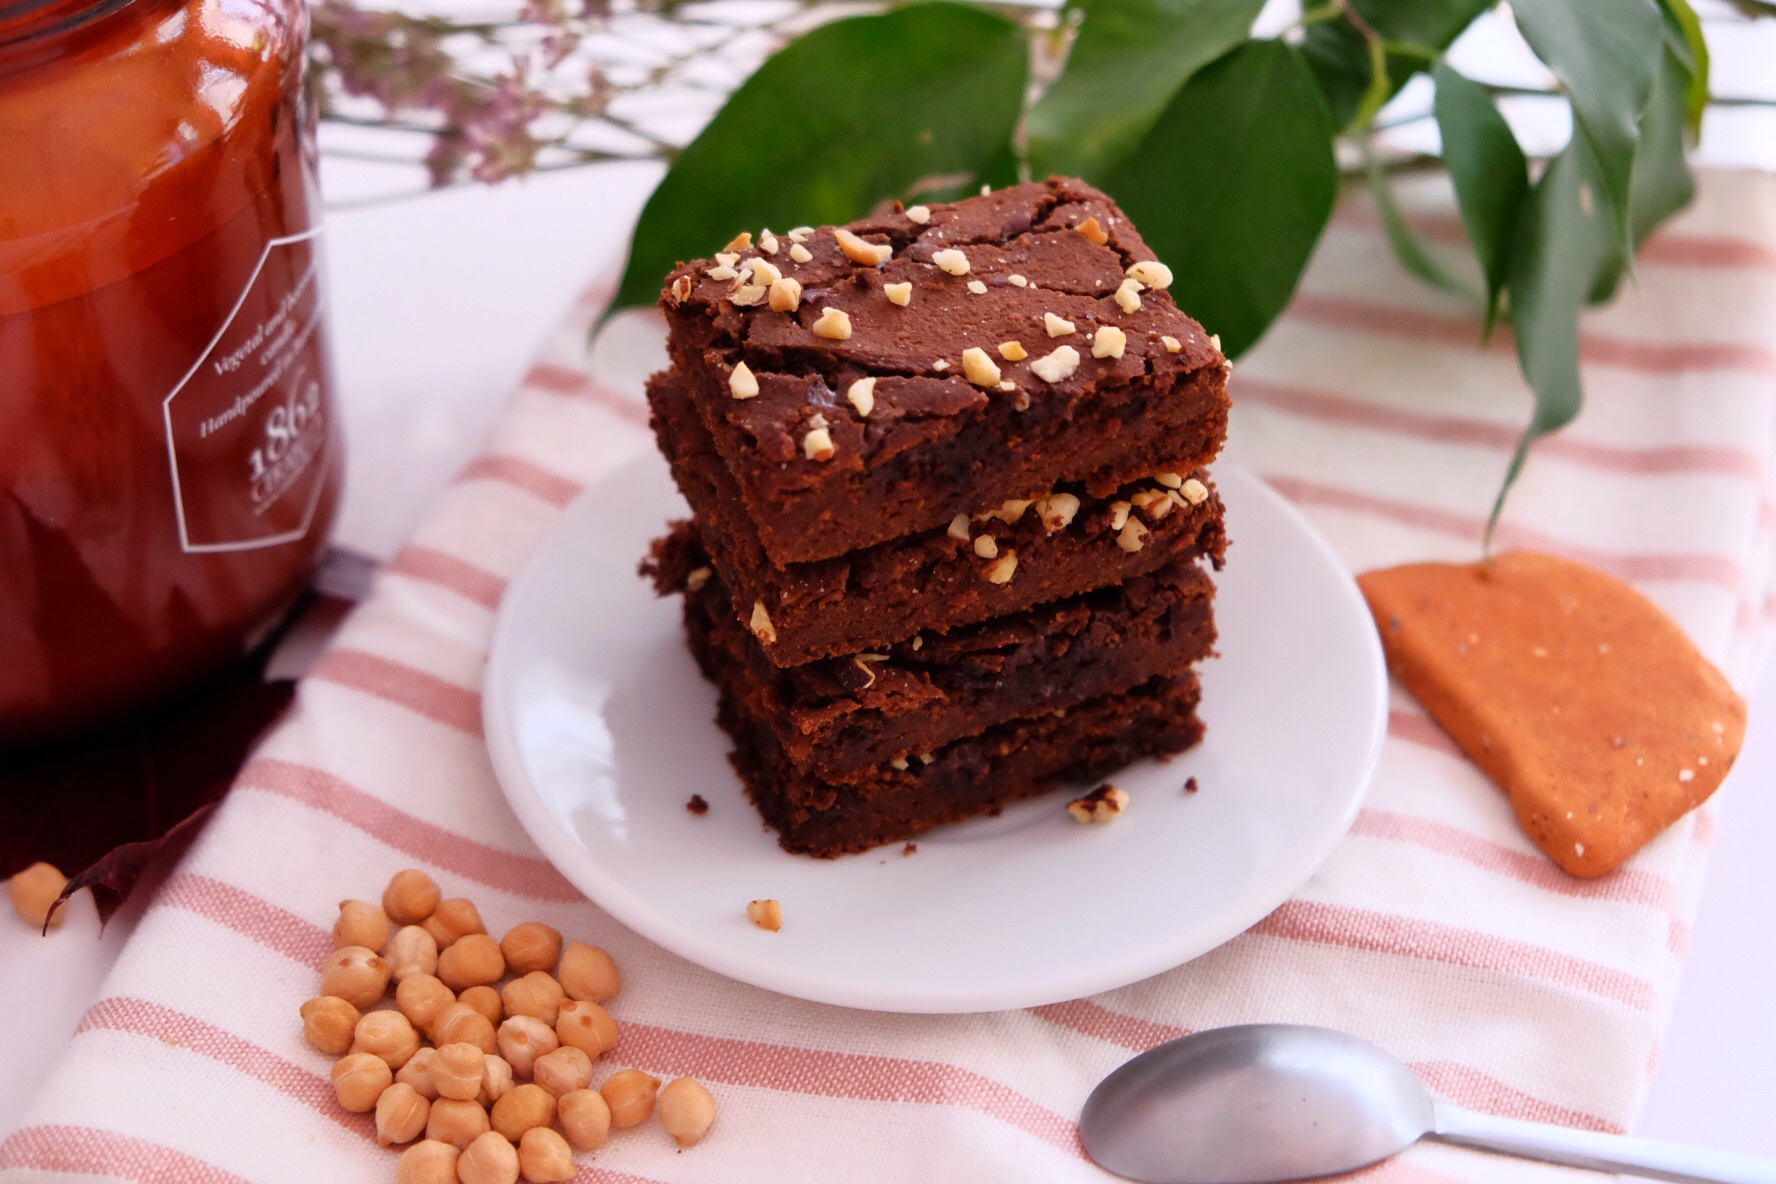 Le brownie au chocolat et aux pois chiches